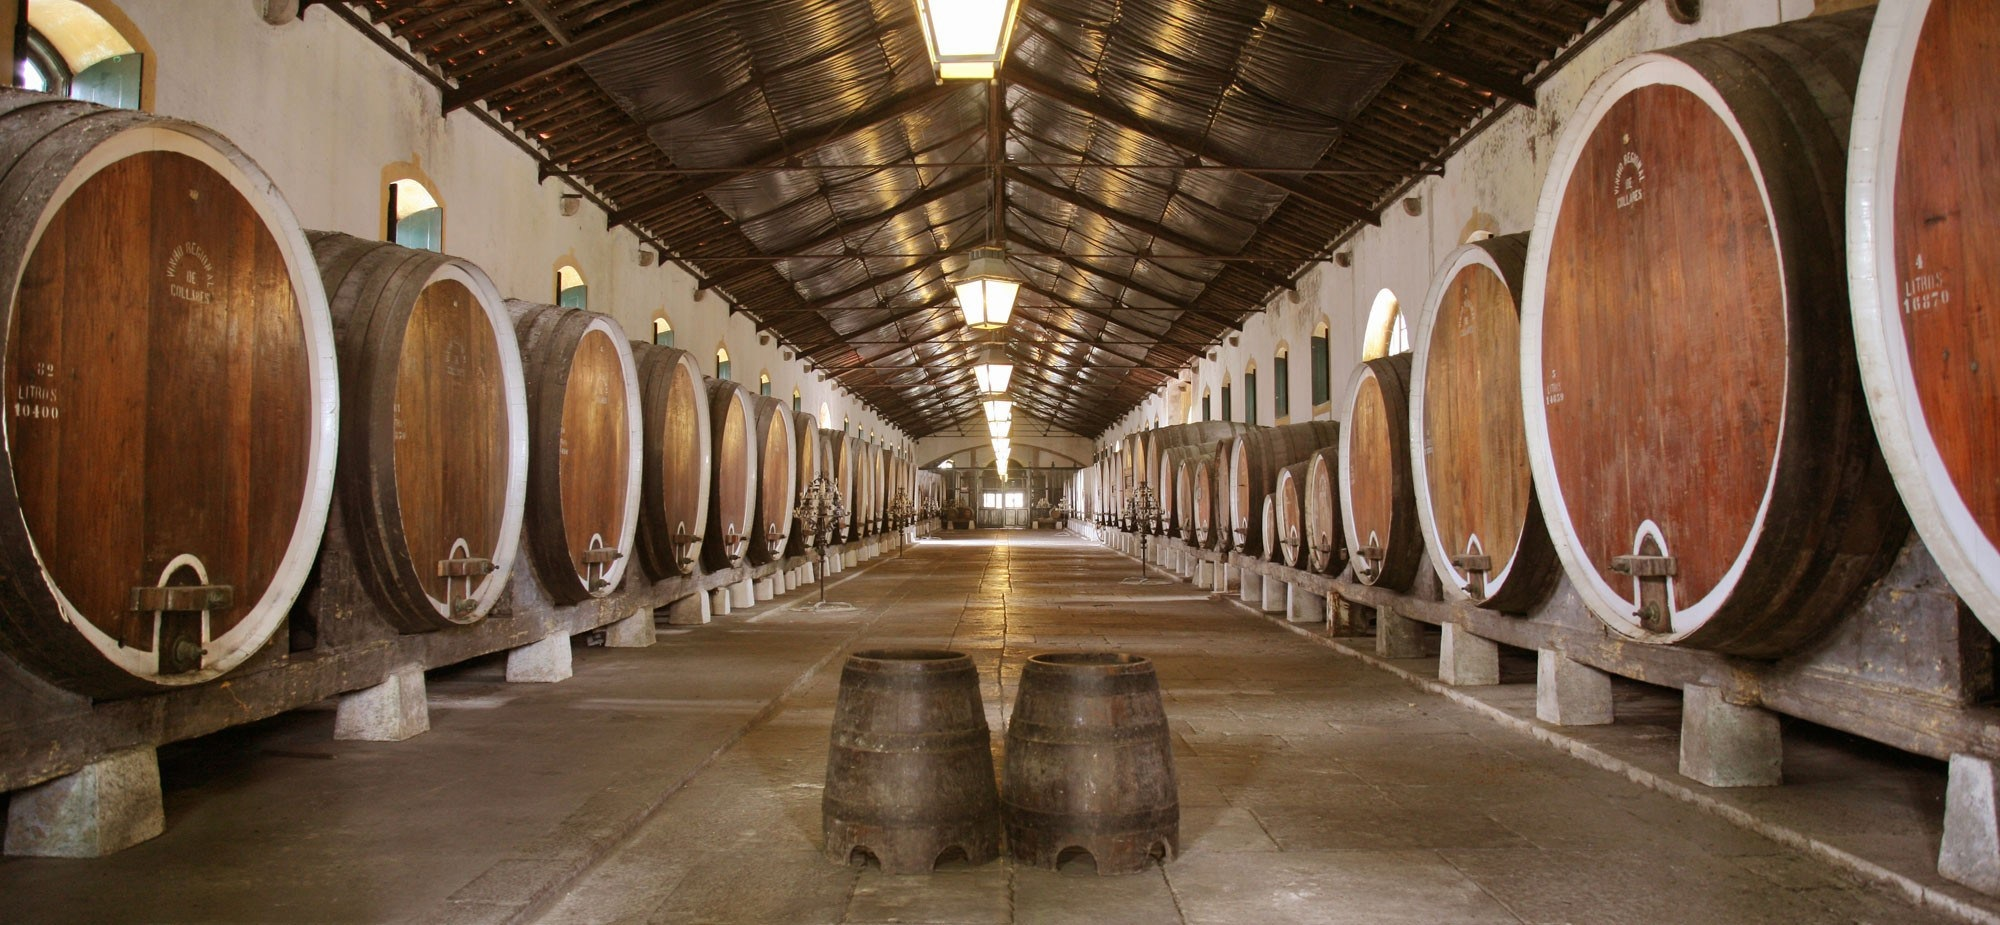 Day_1_-_Coop_Winery[1].jpg